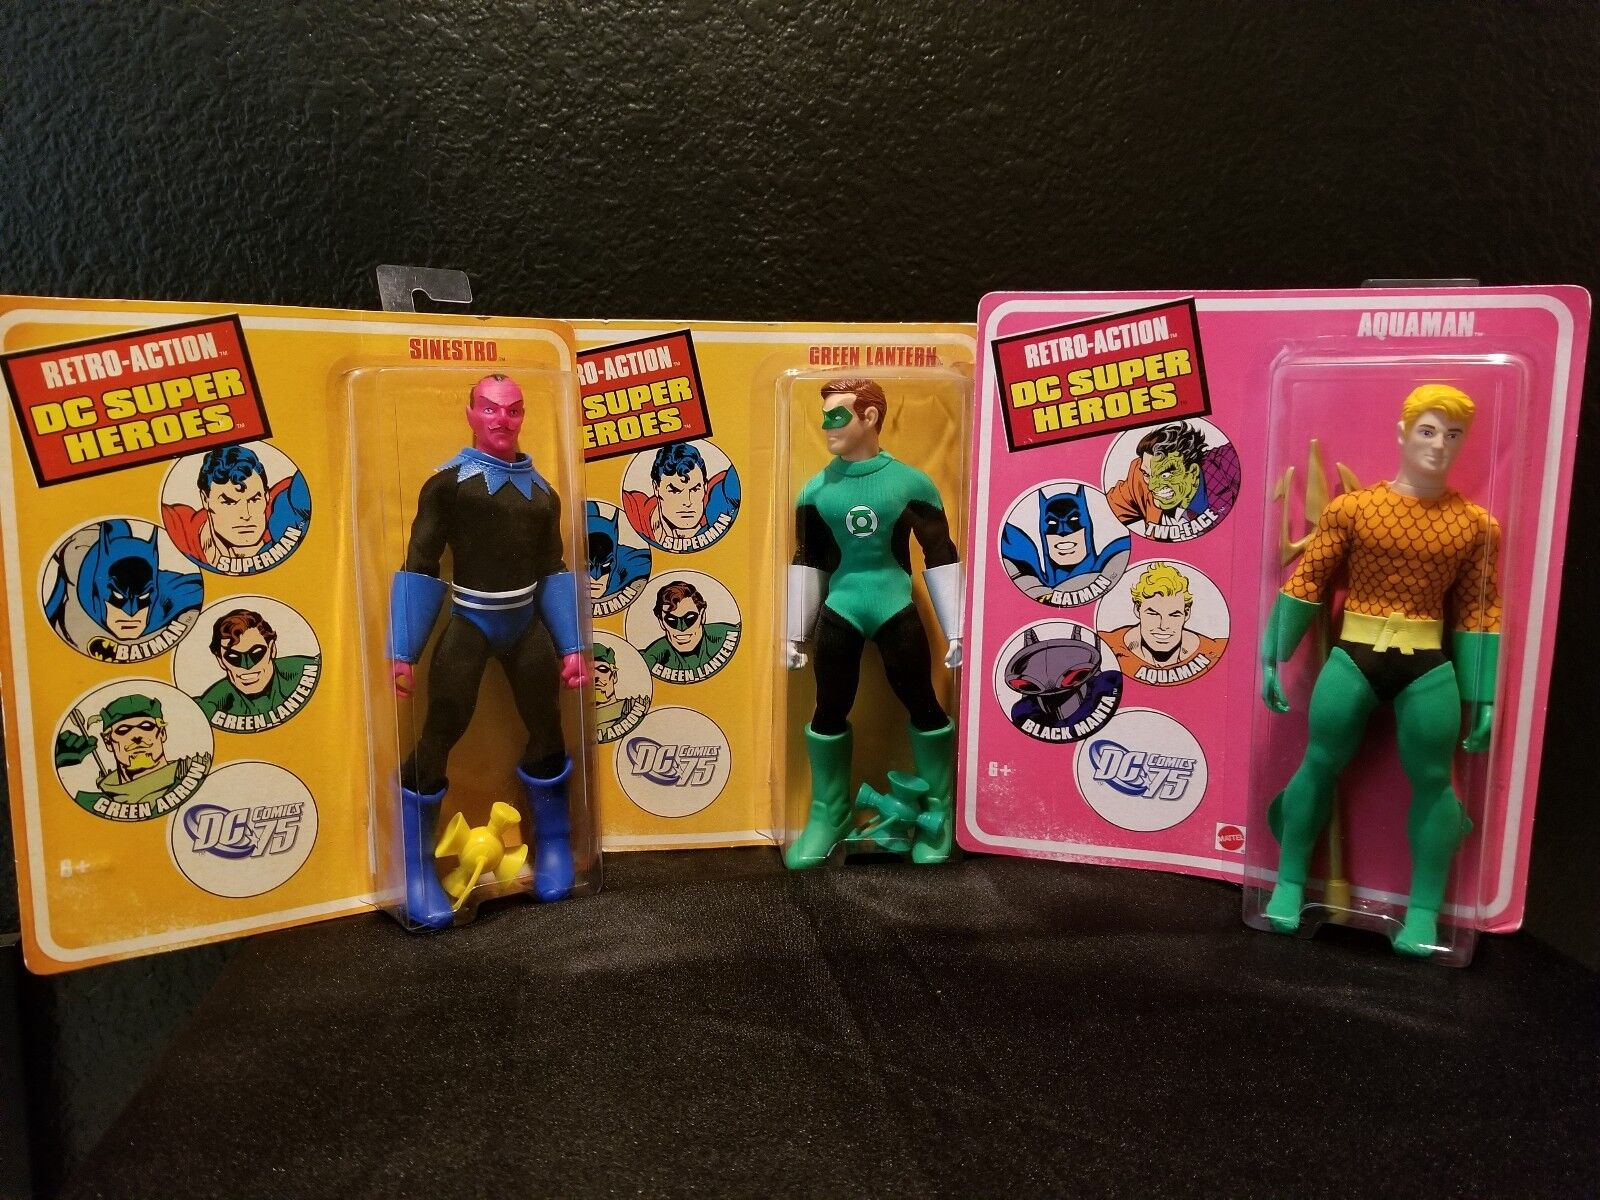 DC Superheroes Set Retro-Action All 3 included. New, unopened.